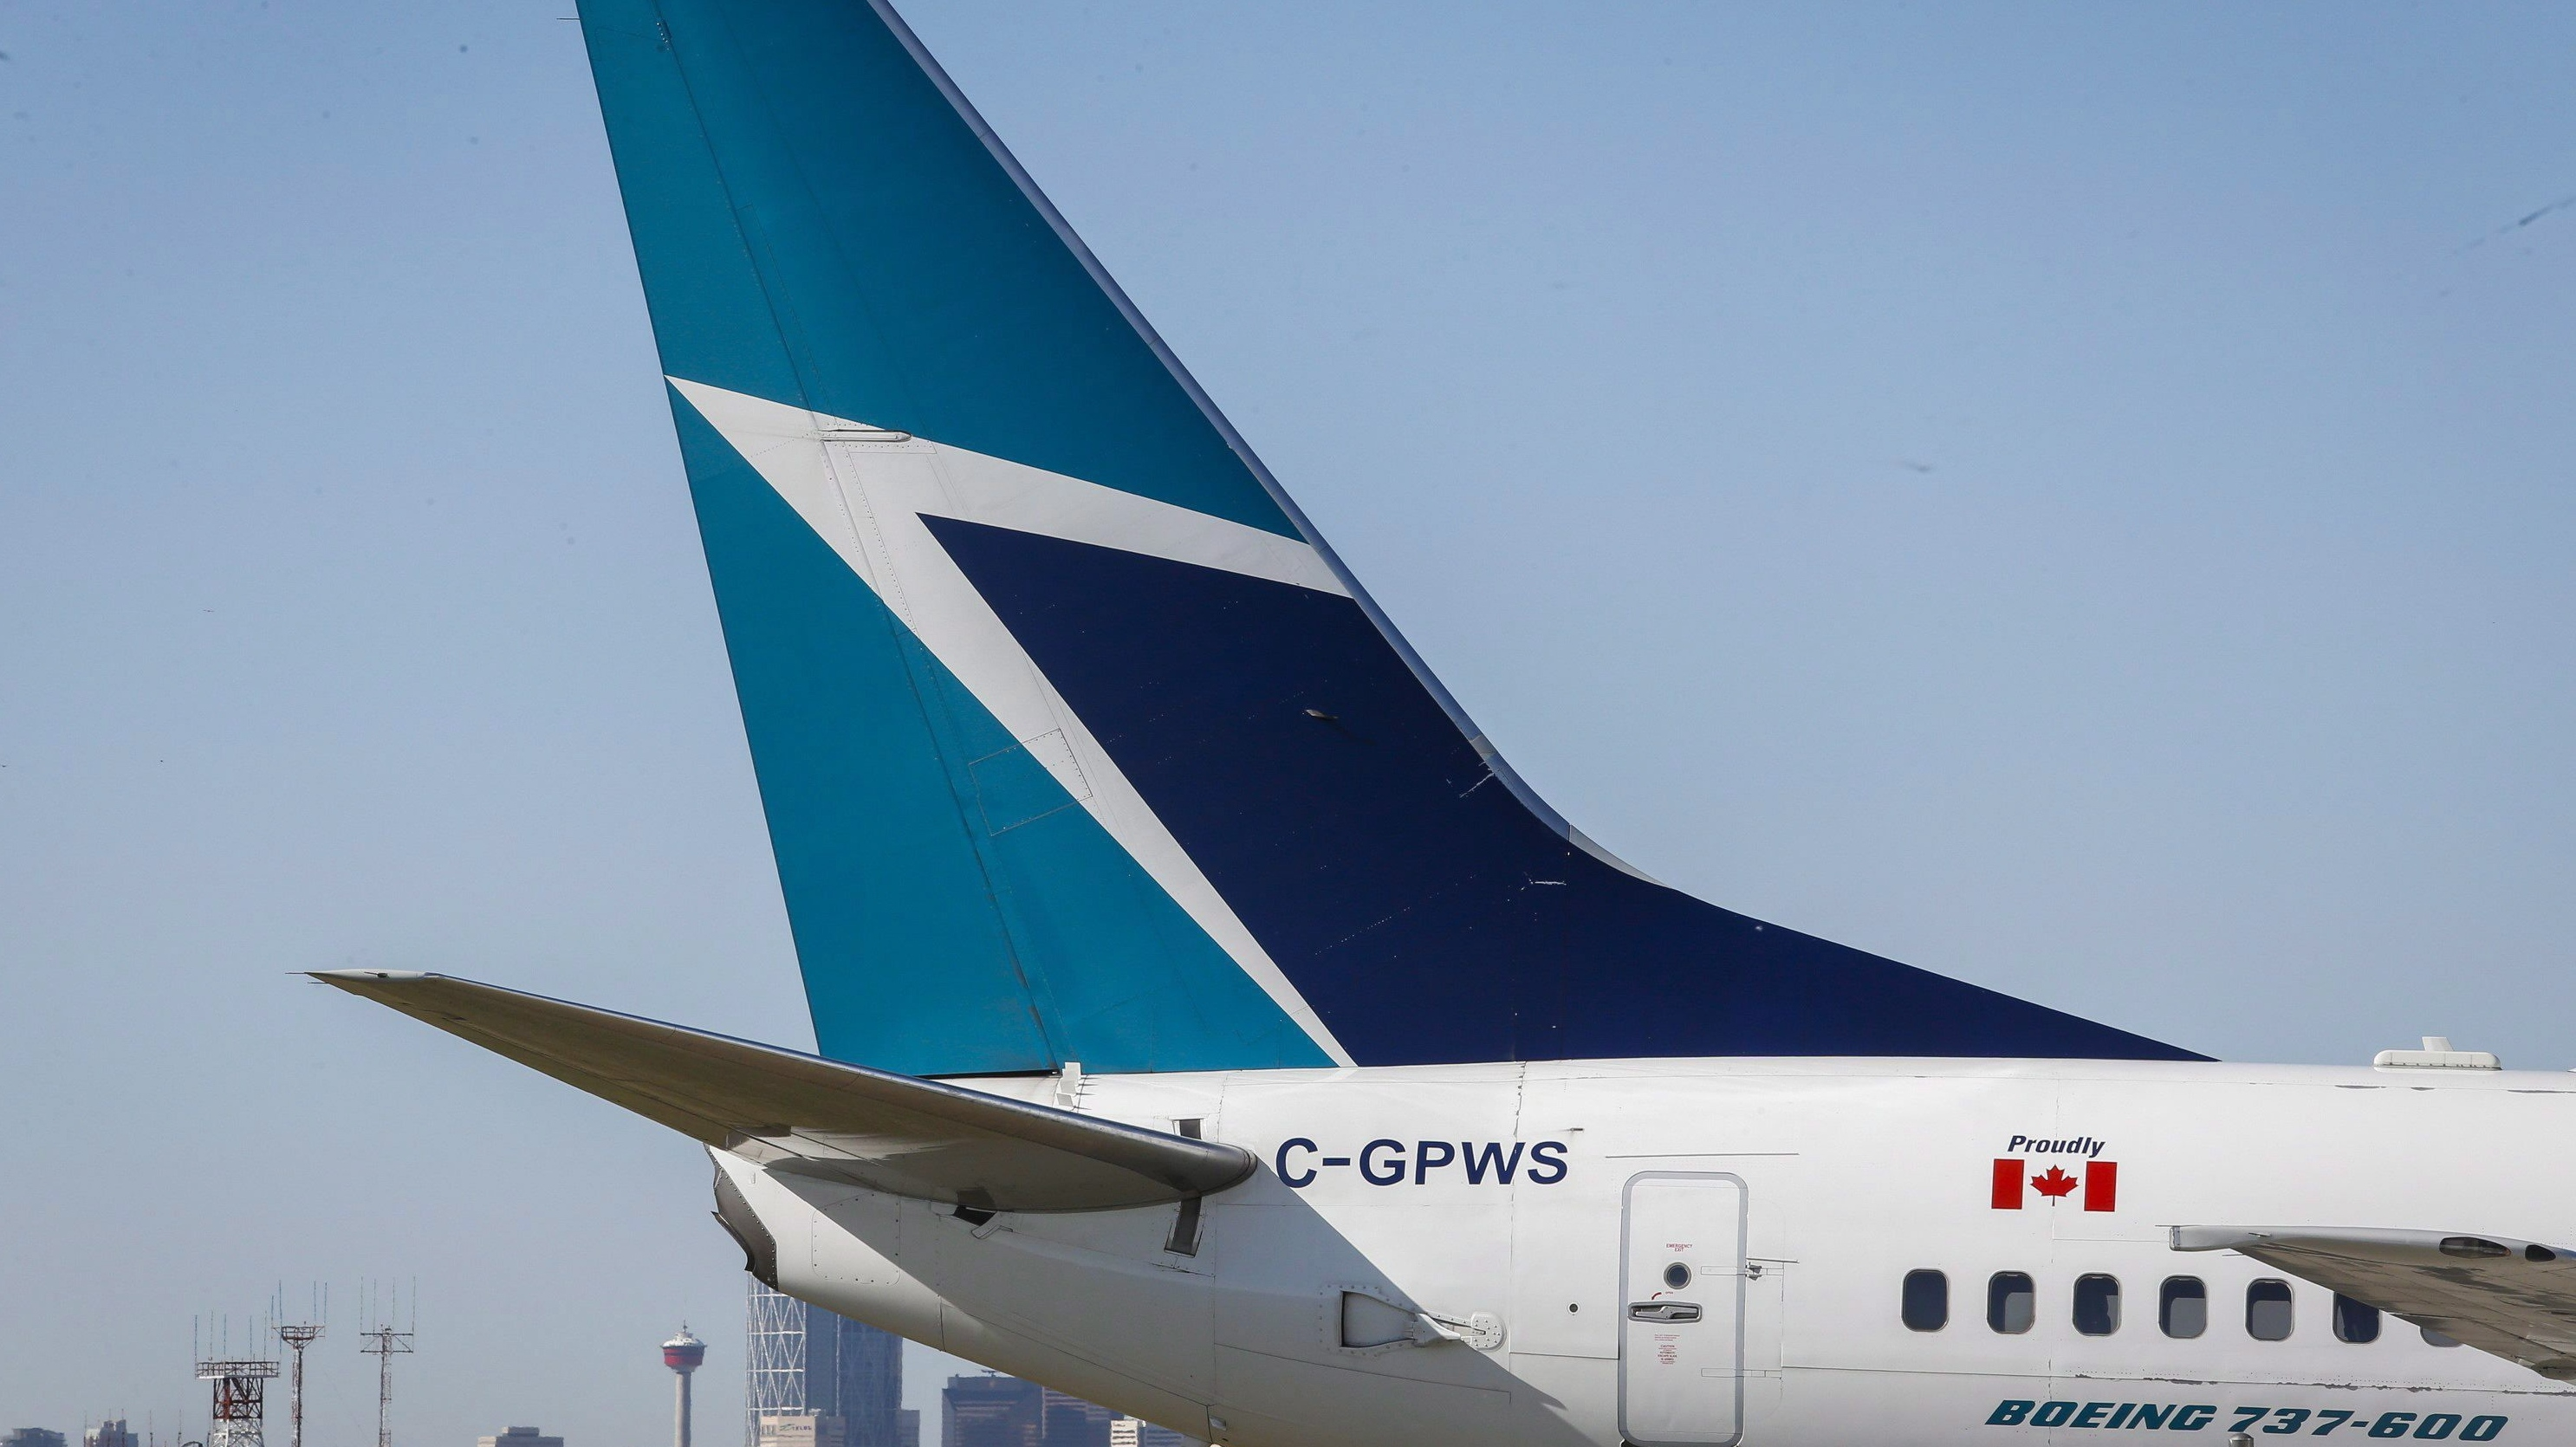 Onex signs agreement to buy WestJet in $5B deal